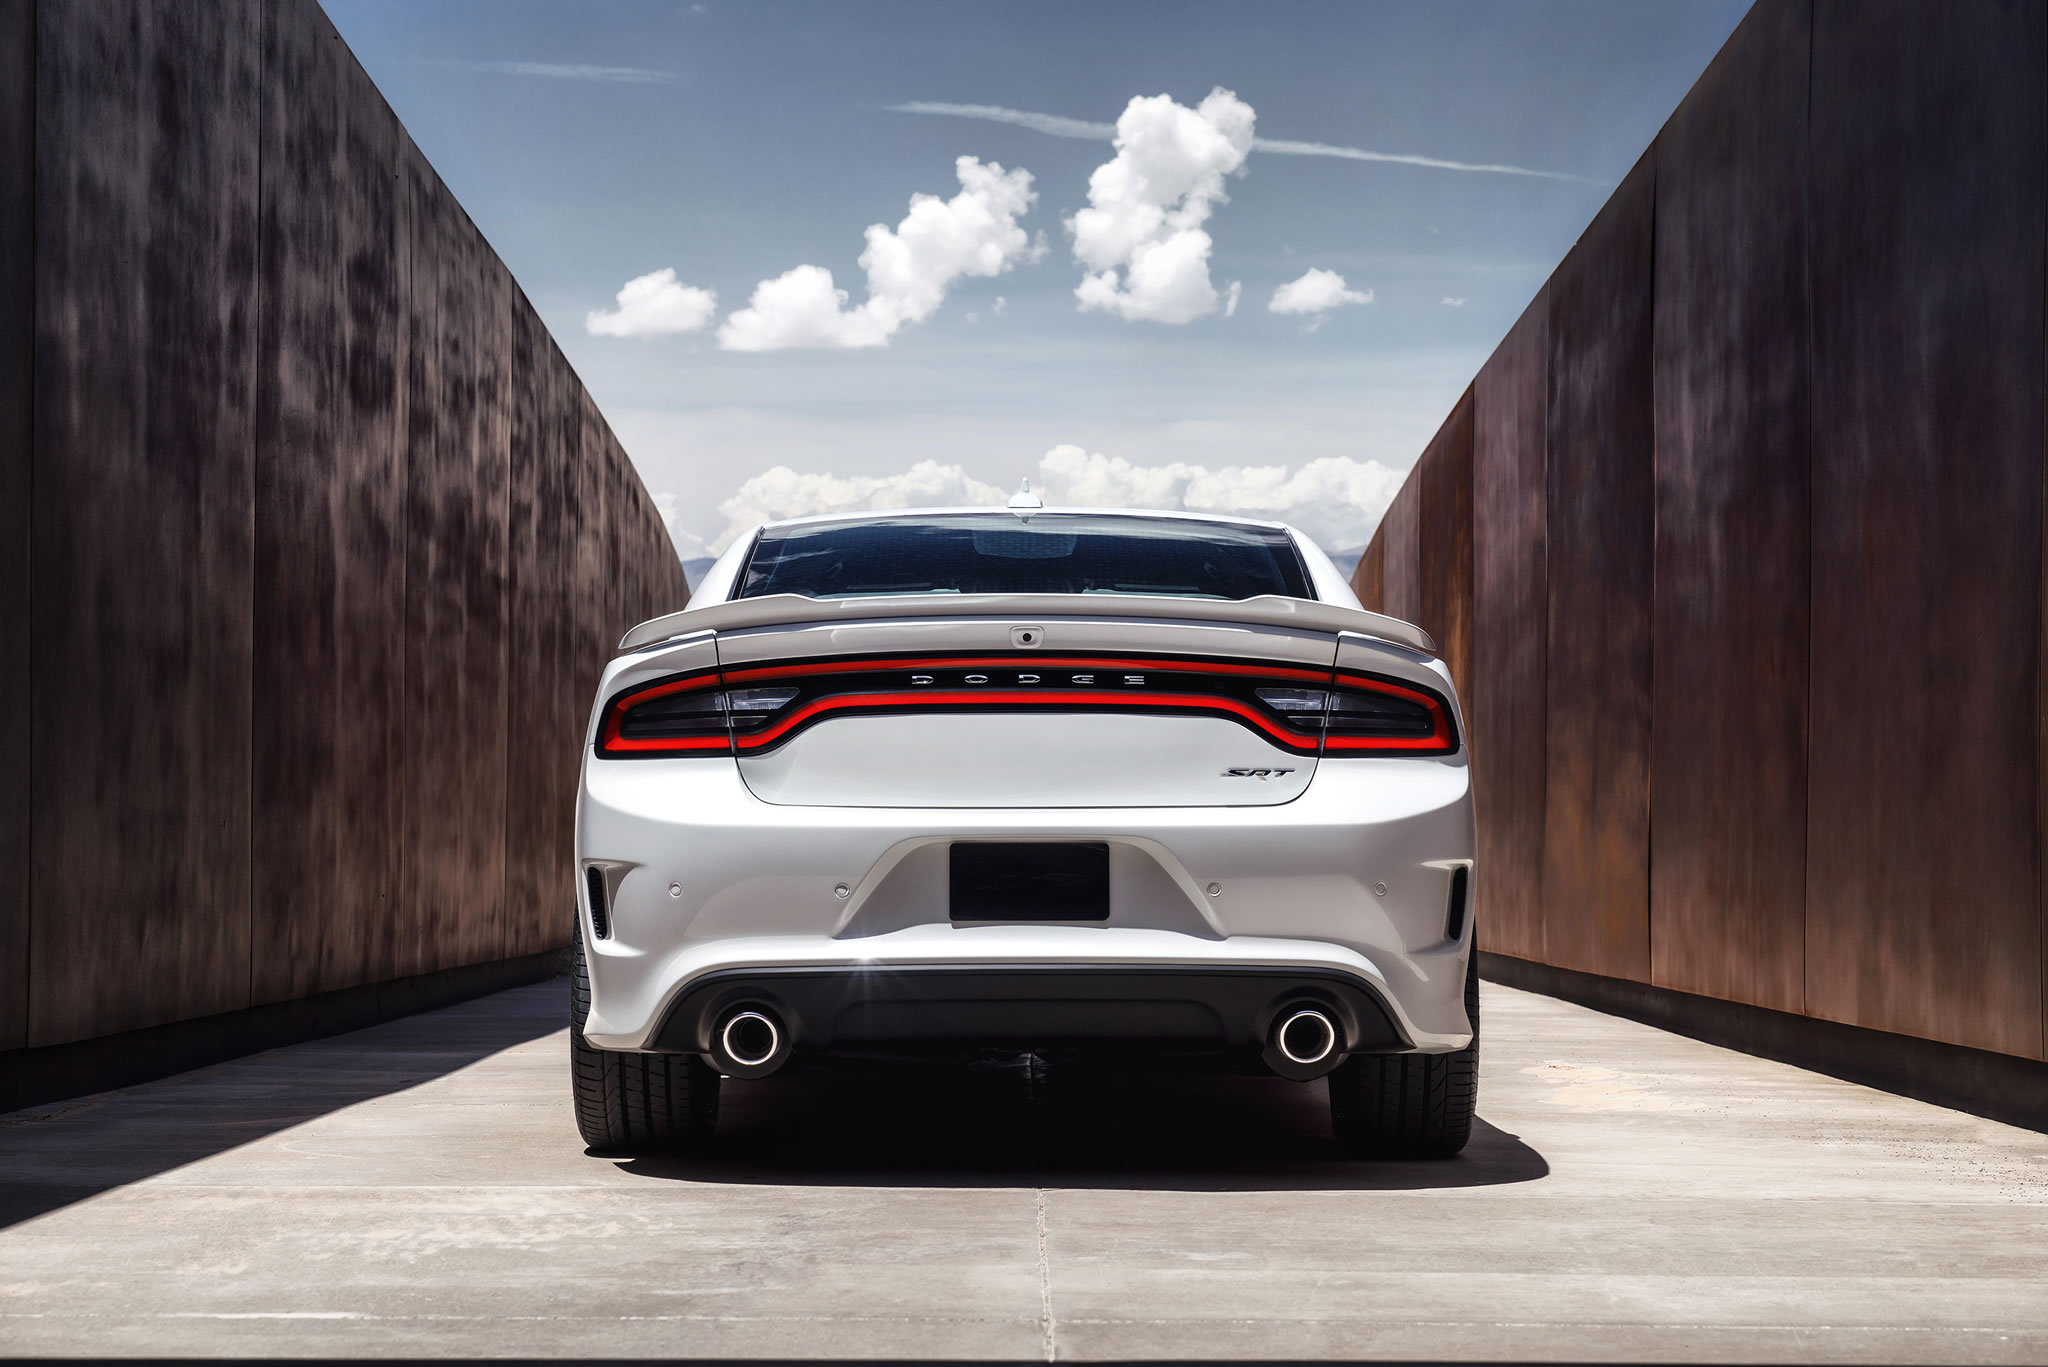 2015 Dodge Charger Srt Hellcat Rear Photo White Color